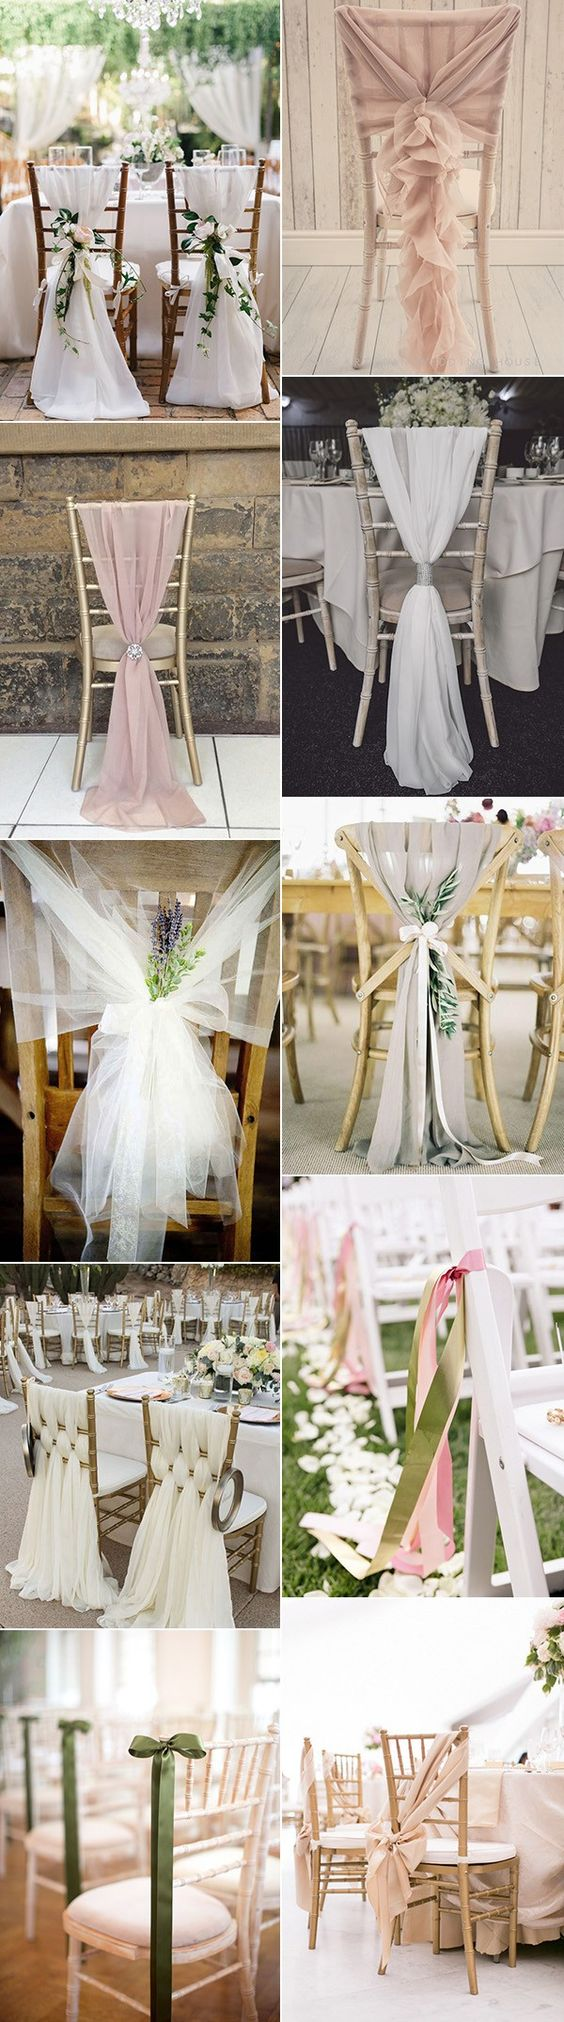 The Most Beautiful Ways Of Decorating Wedding Chairs